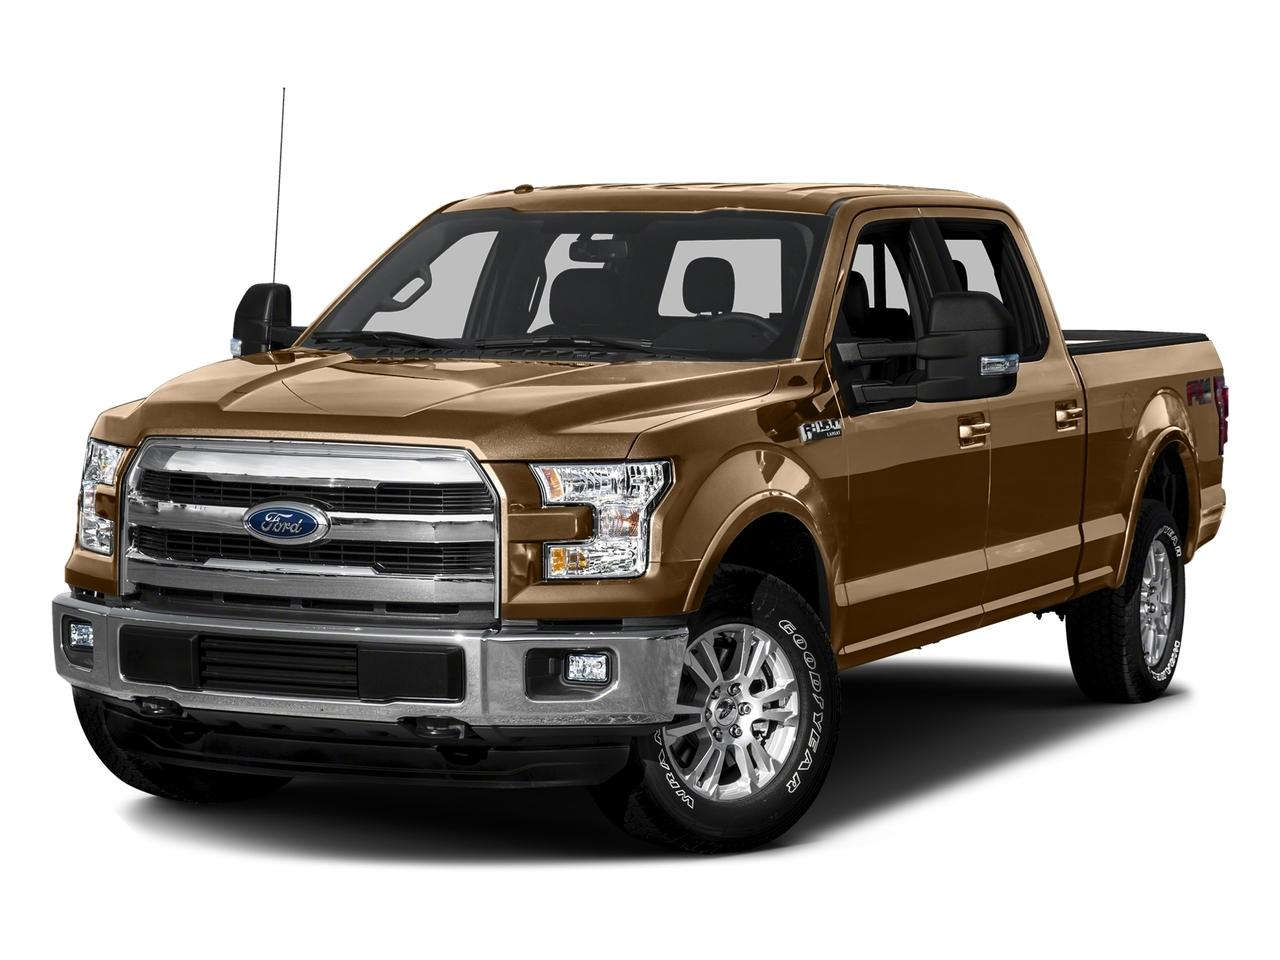 Used 2016 Ford F-150 XLT with VIN 1FTEW1EF7GKD77625 for sale in Worthington, Minnesota